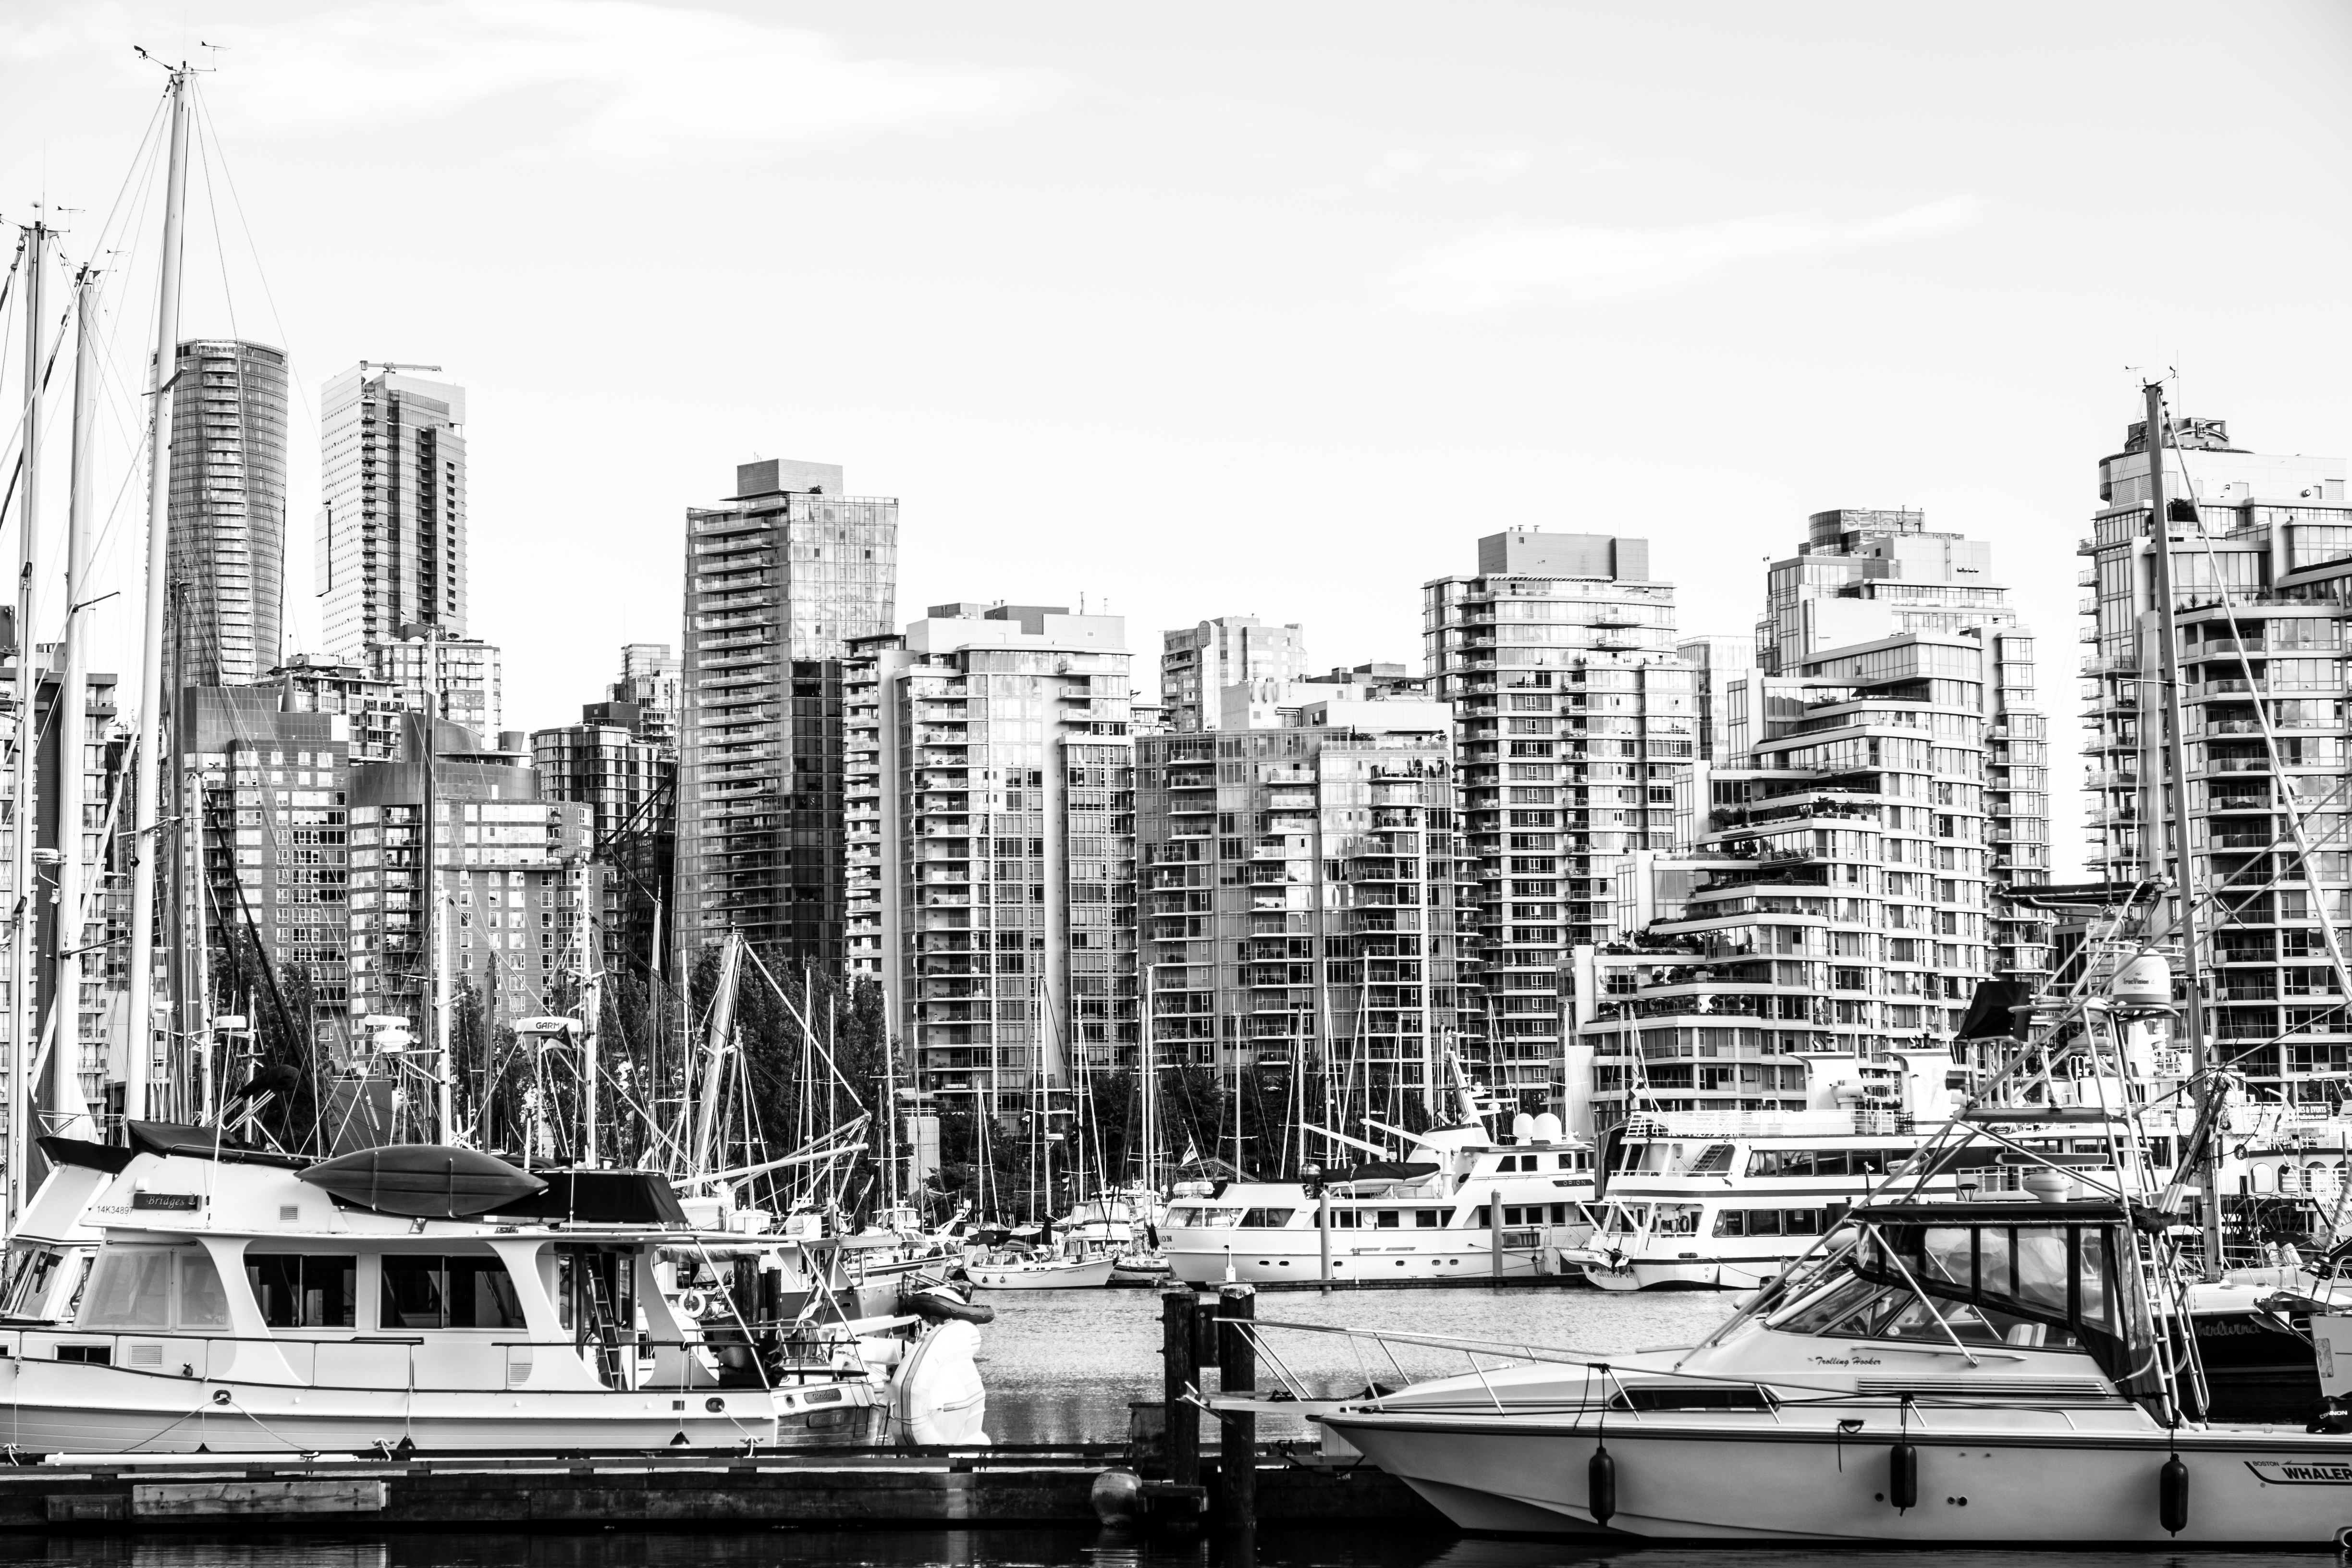 Vancouver's waterfront is dotted with many small inlets and boat docks.